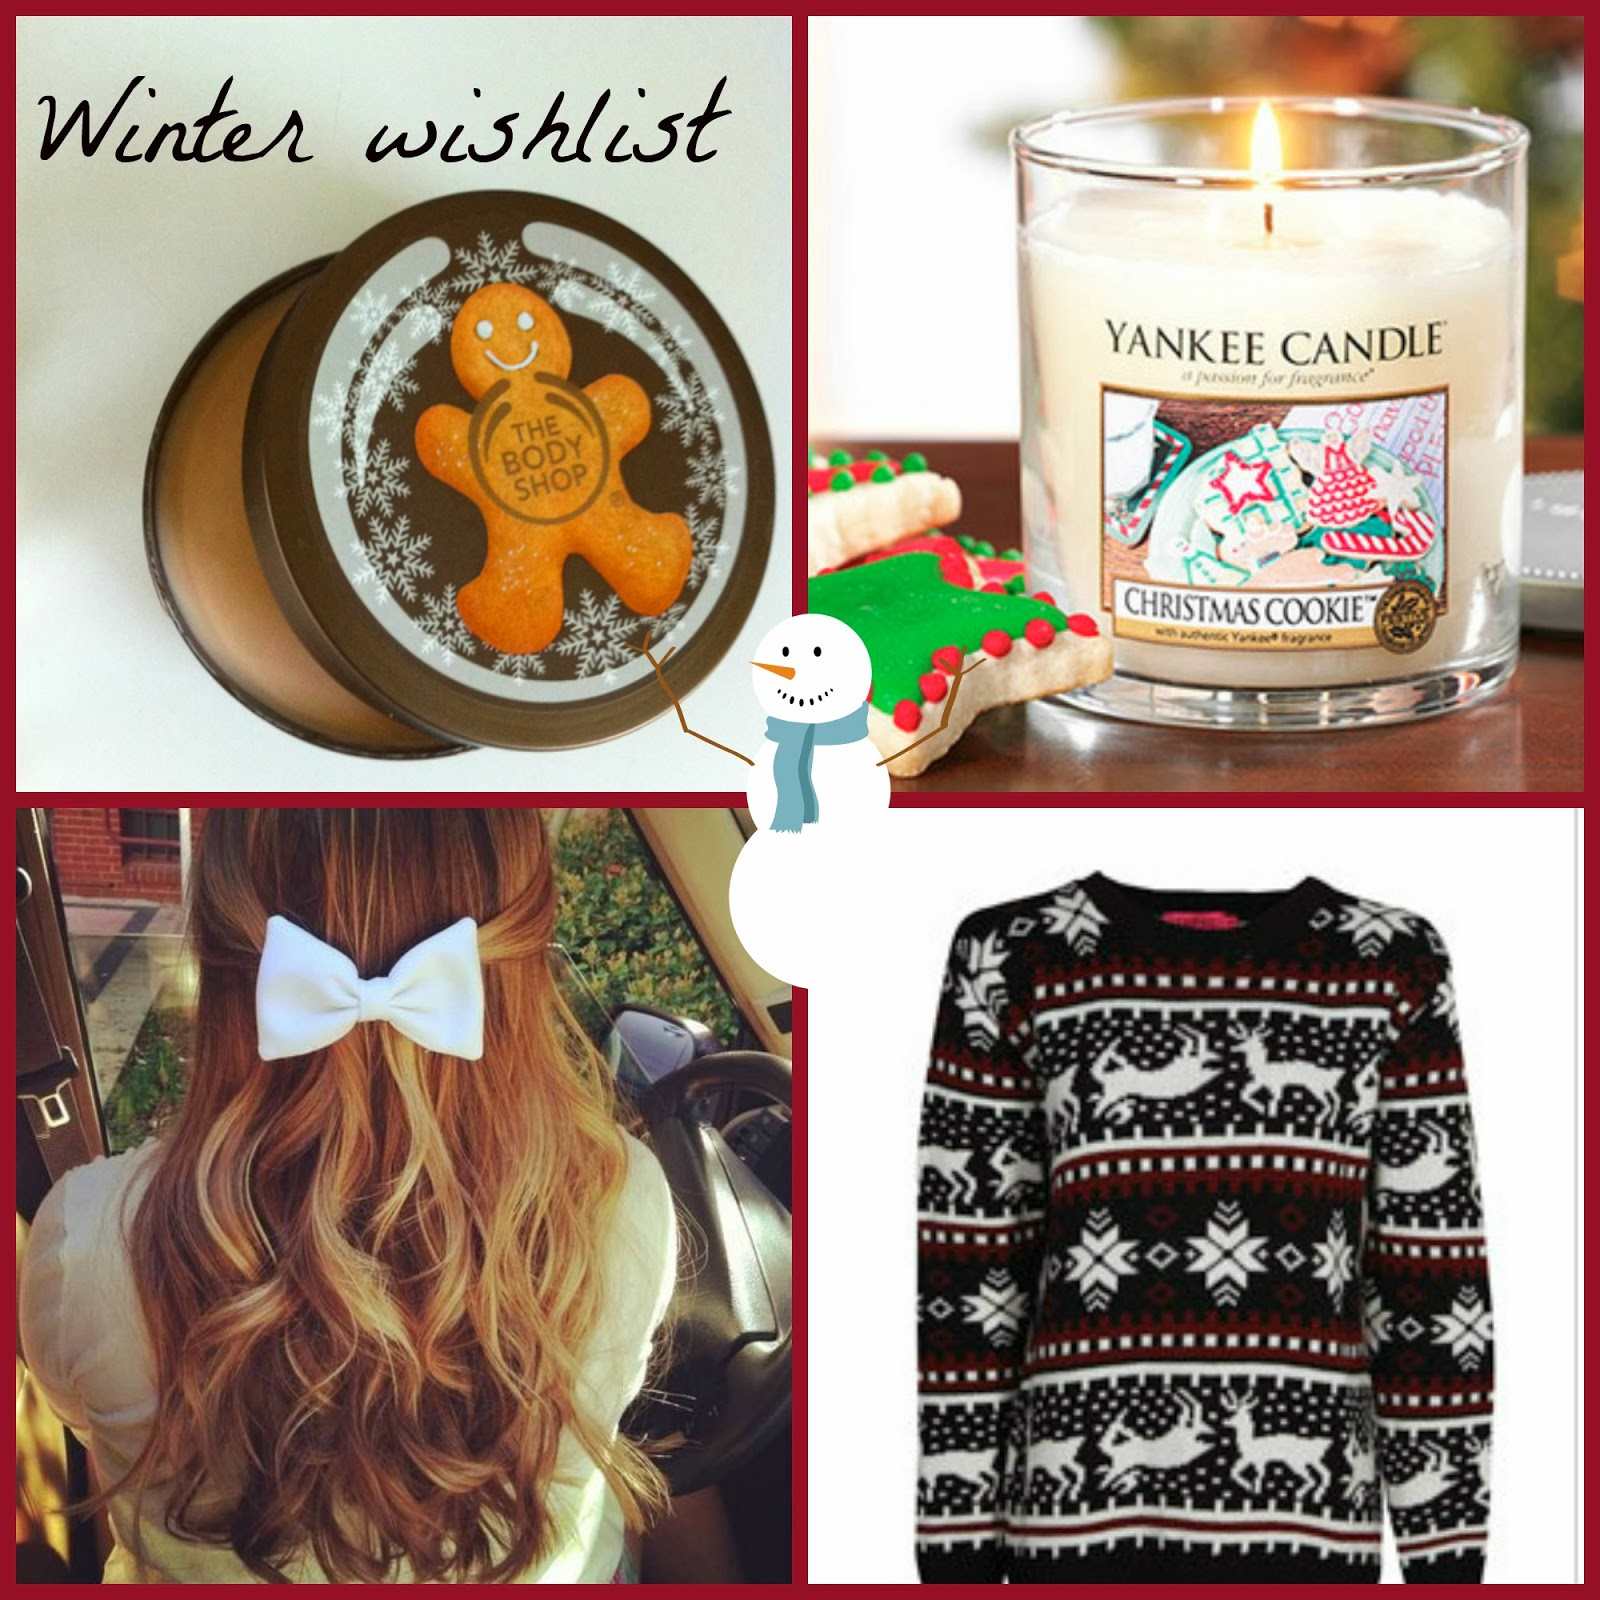 Wishlist winter. – Let it snow #1